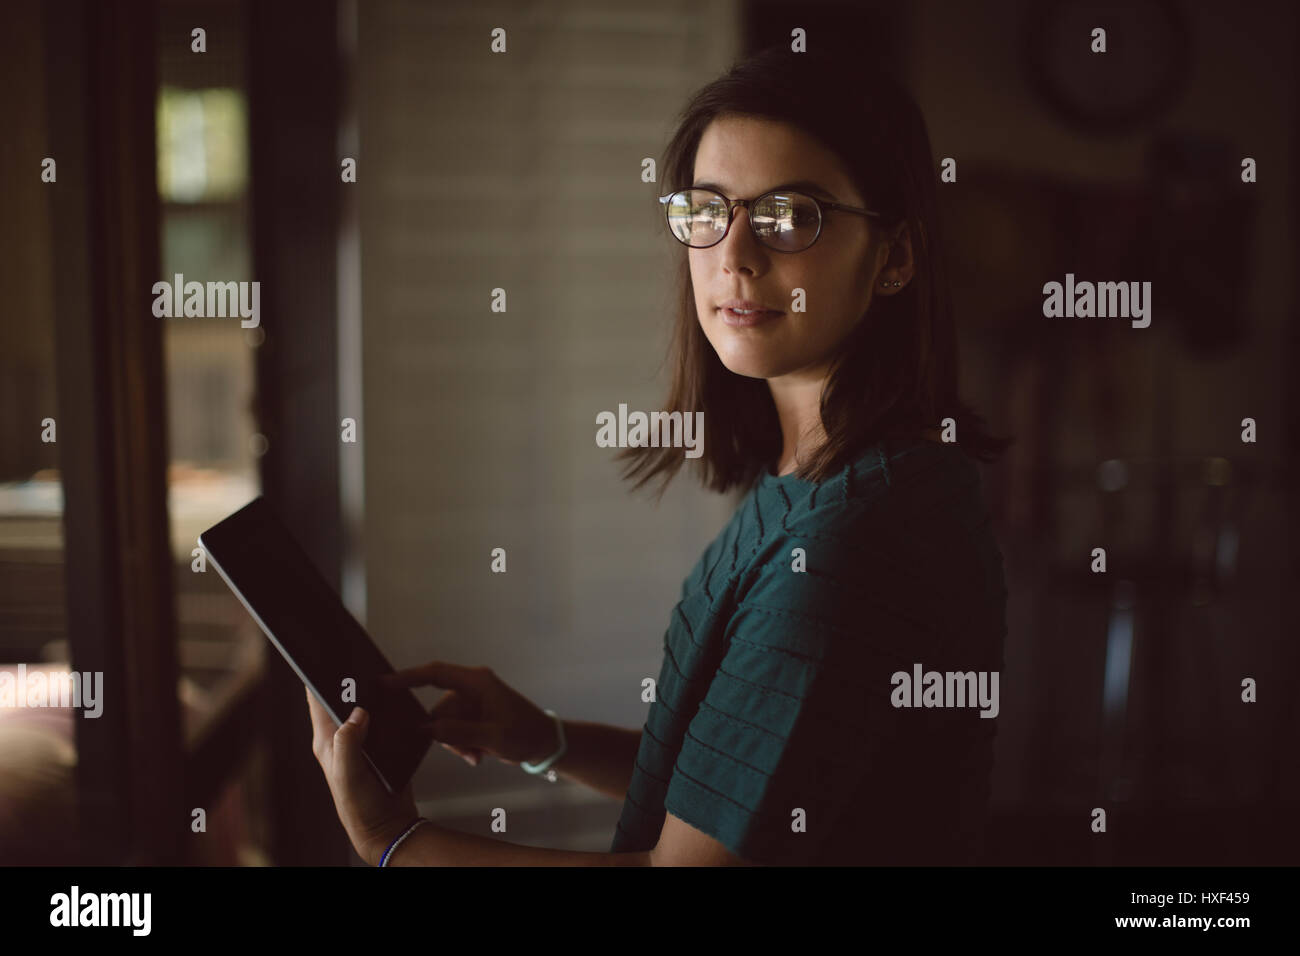 Portrait of woman using digital table at home - Stock Image